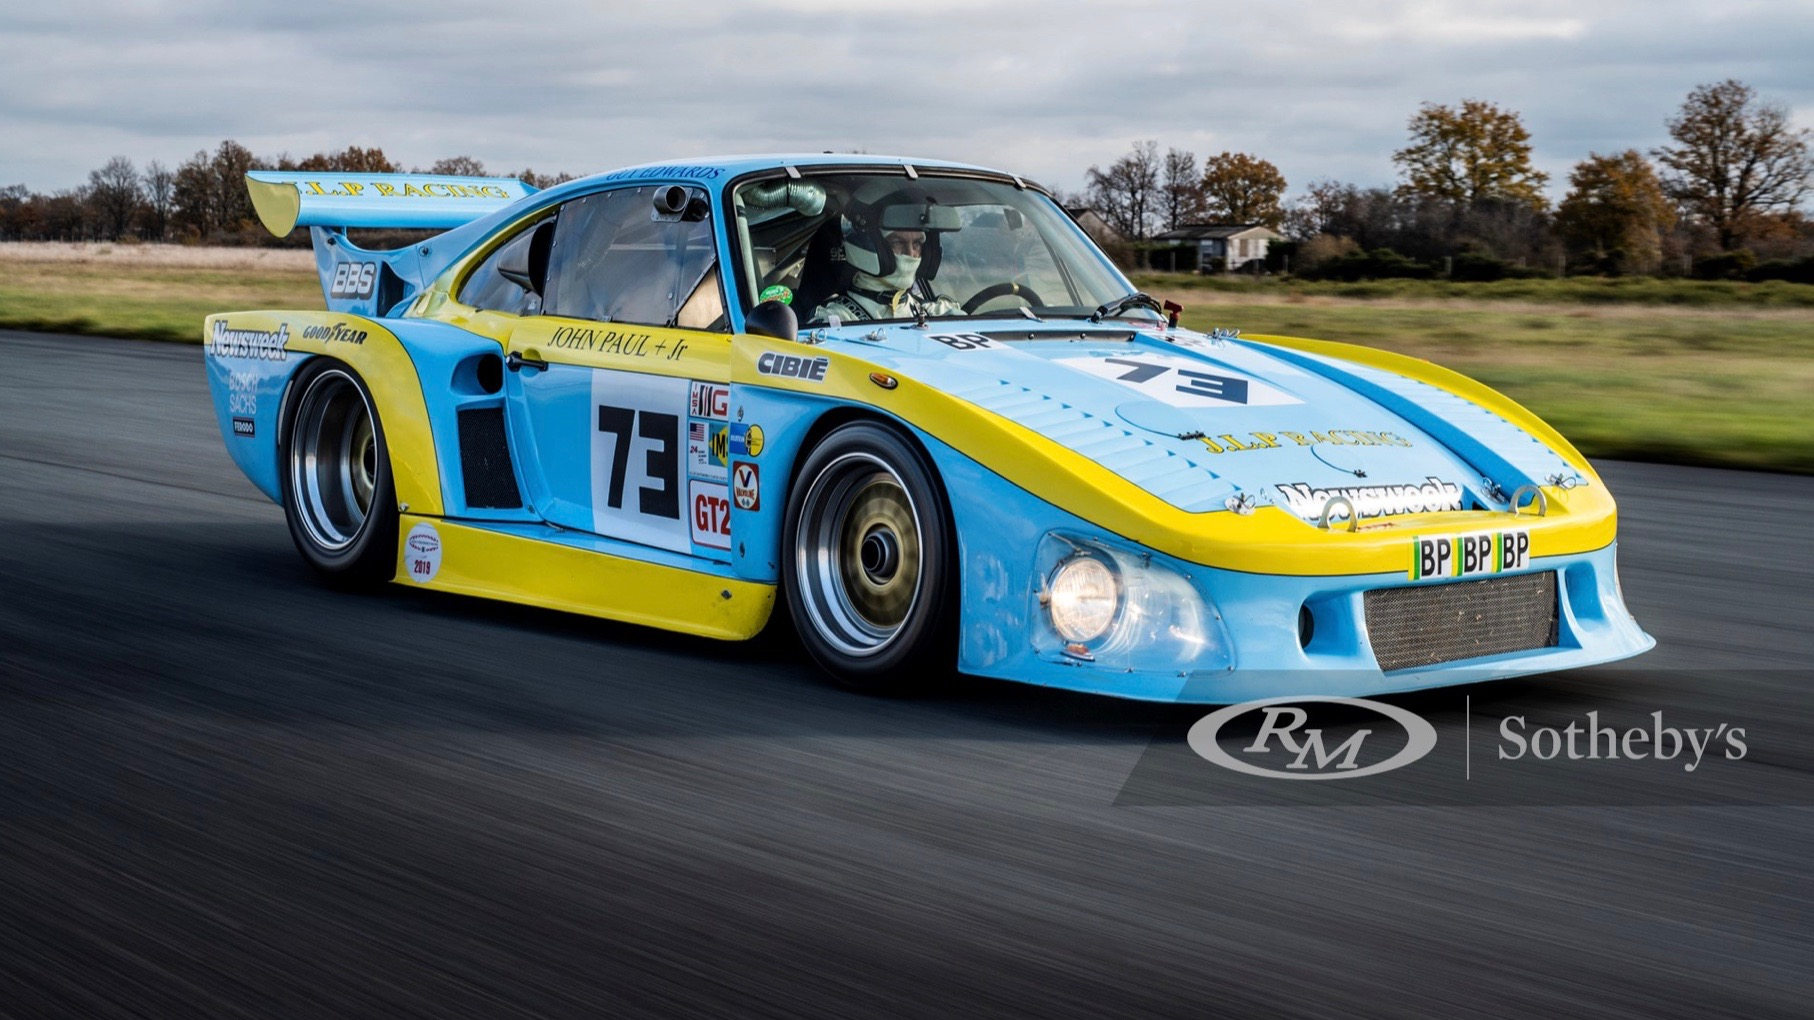 1980 Porsche 935 JLP-2 that raced at Le Mans up for sale for $2.1M